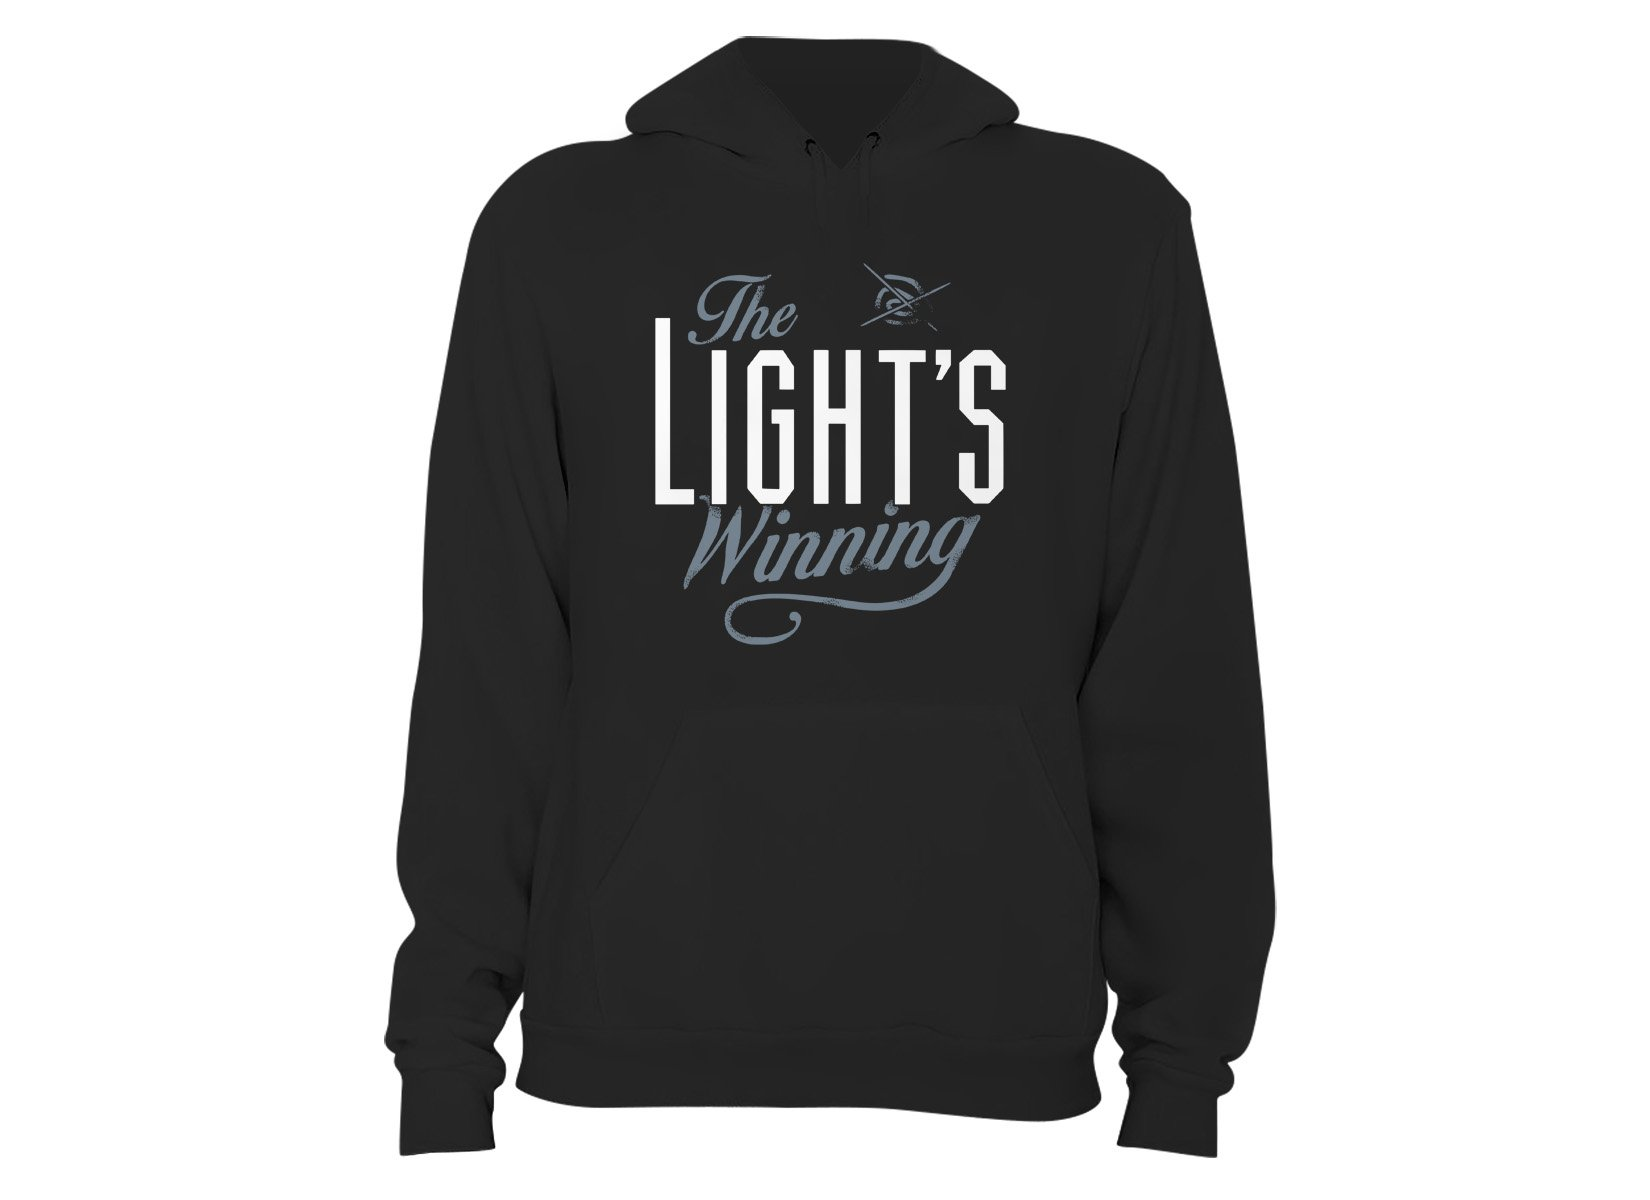 The Light's Winning on Hoodie